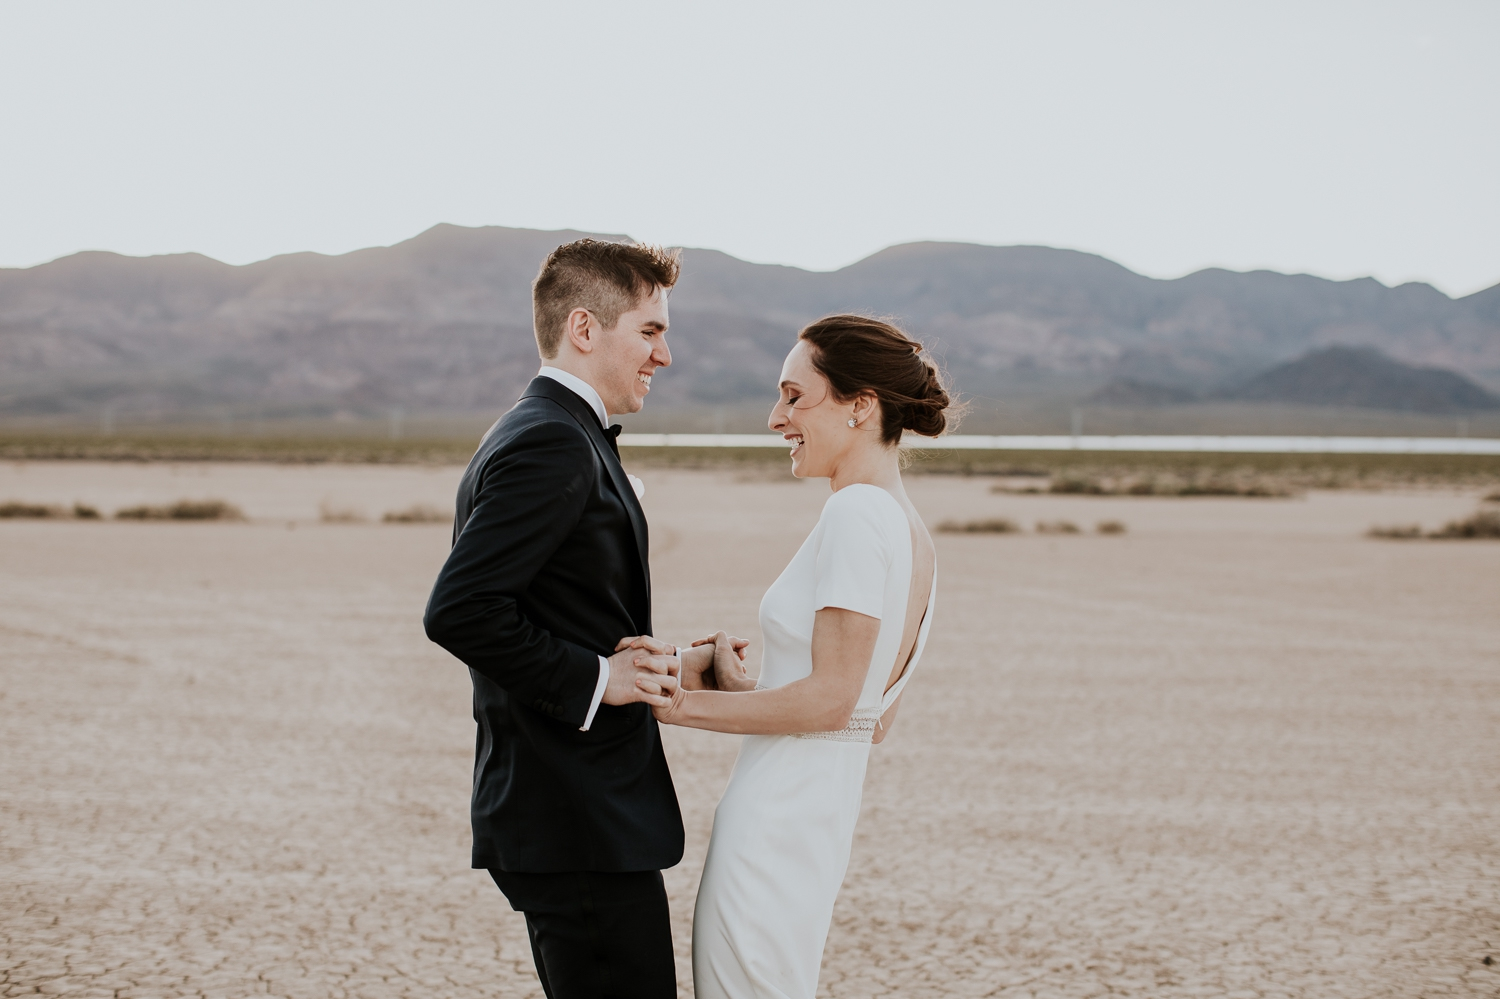 destination-photographer-colorado-dry-beds-nevada-elopement 69.jpg